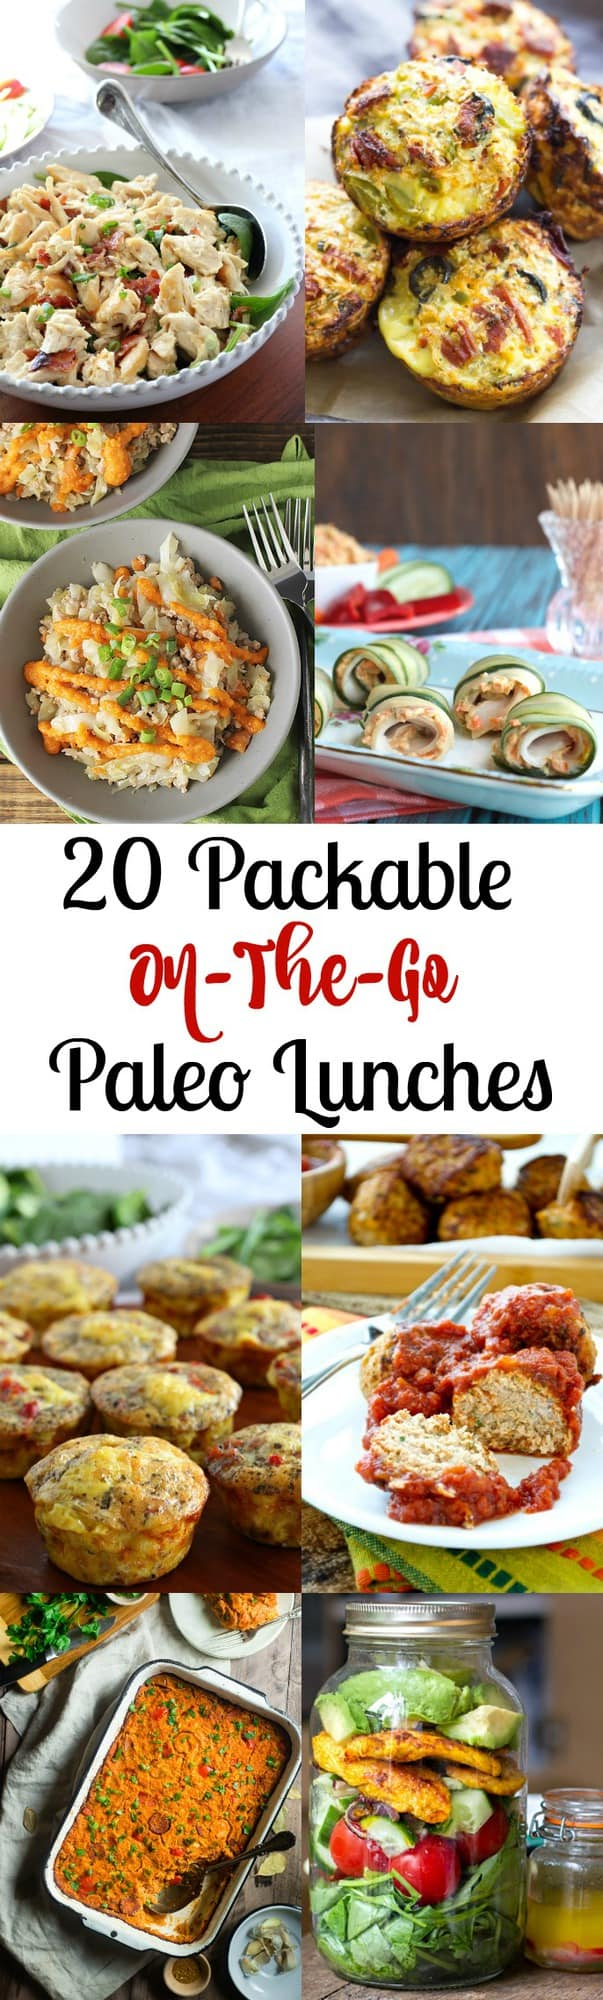 20 packable on-the-go paleo lunches | the paleo running momma